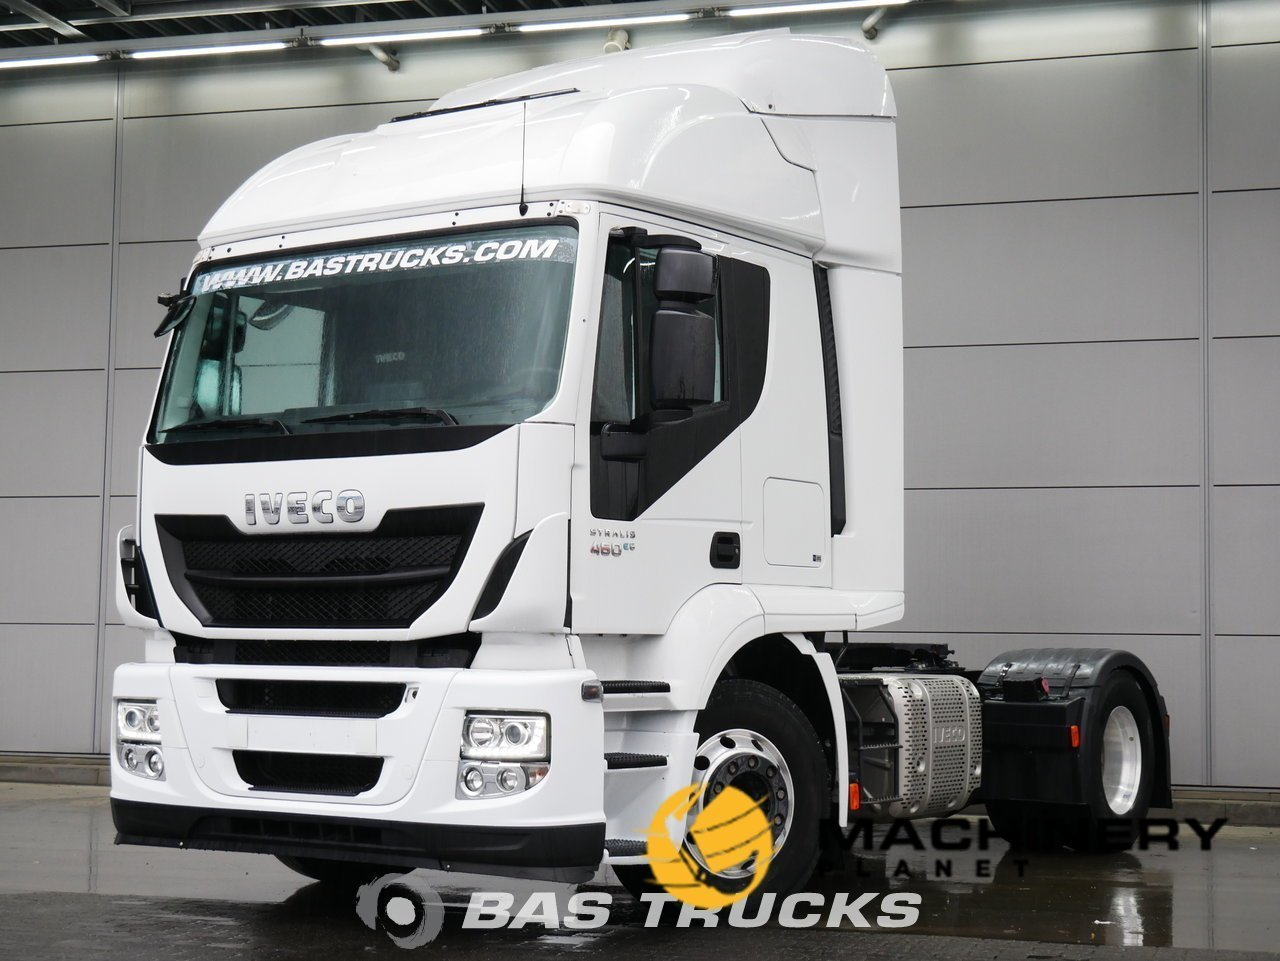 Used-Tractorhead-IVECO-Stralis-HI-Road-AT440S46-4X2-2015_148073_1-1554202060921_5ca33dcce0cd3-1.jpg